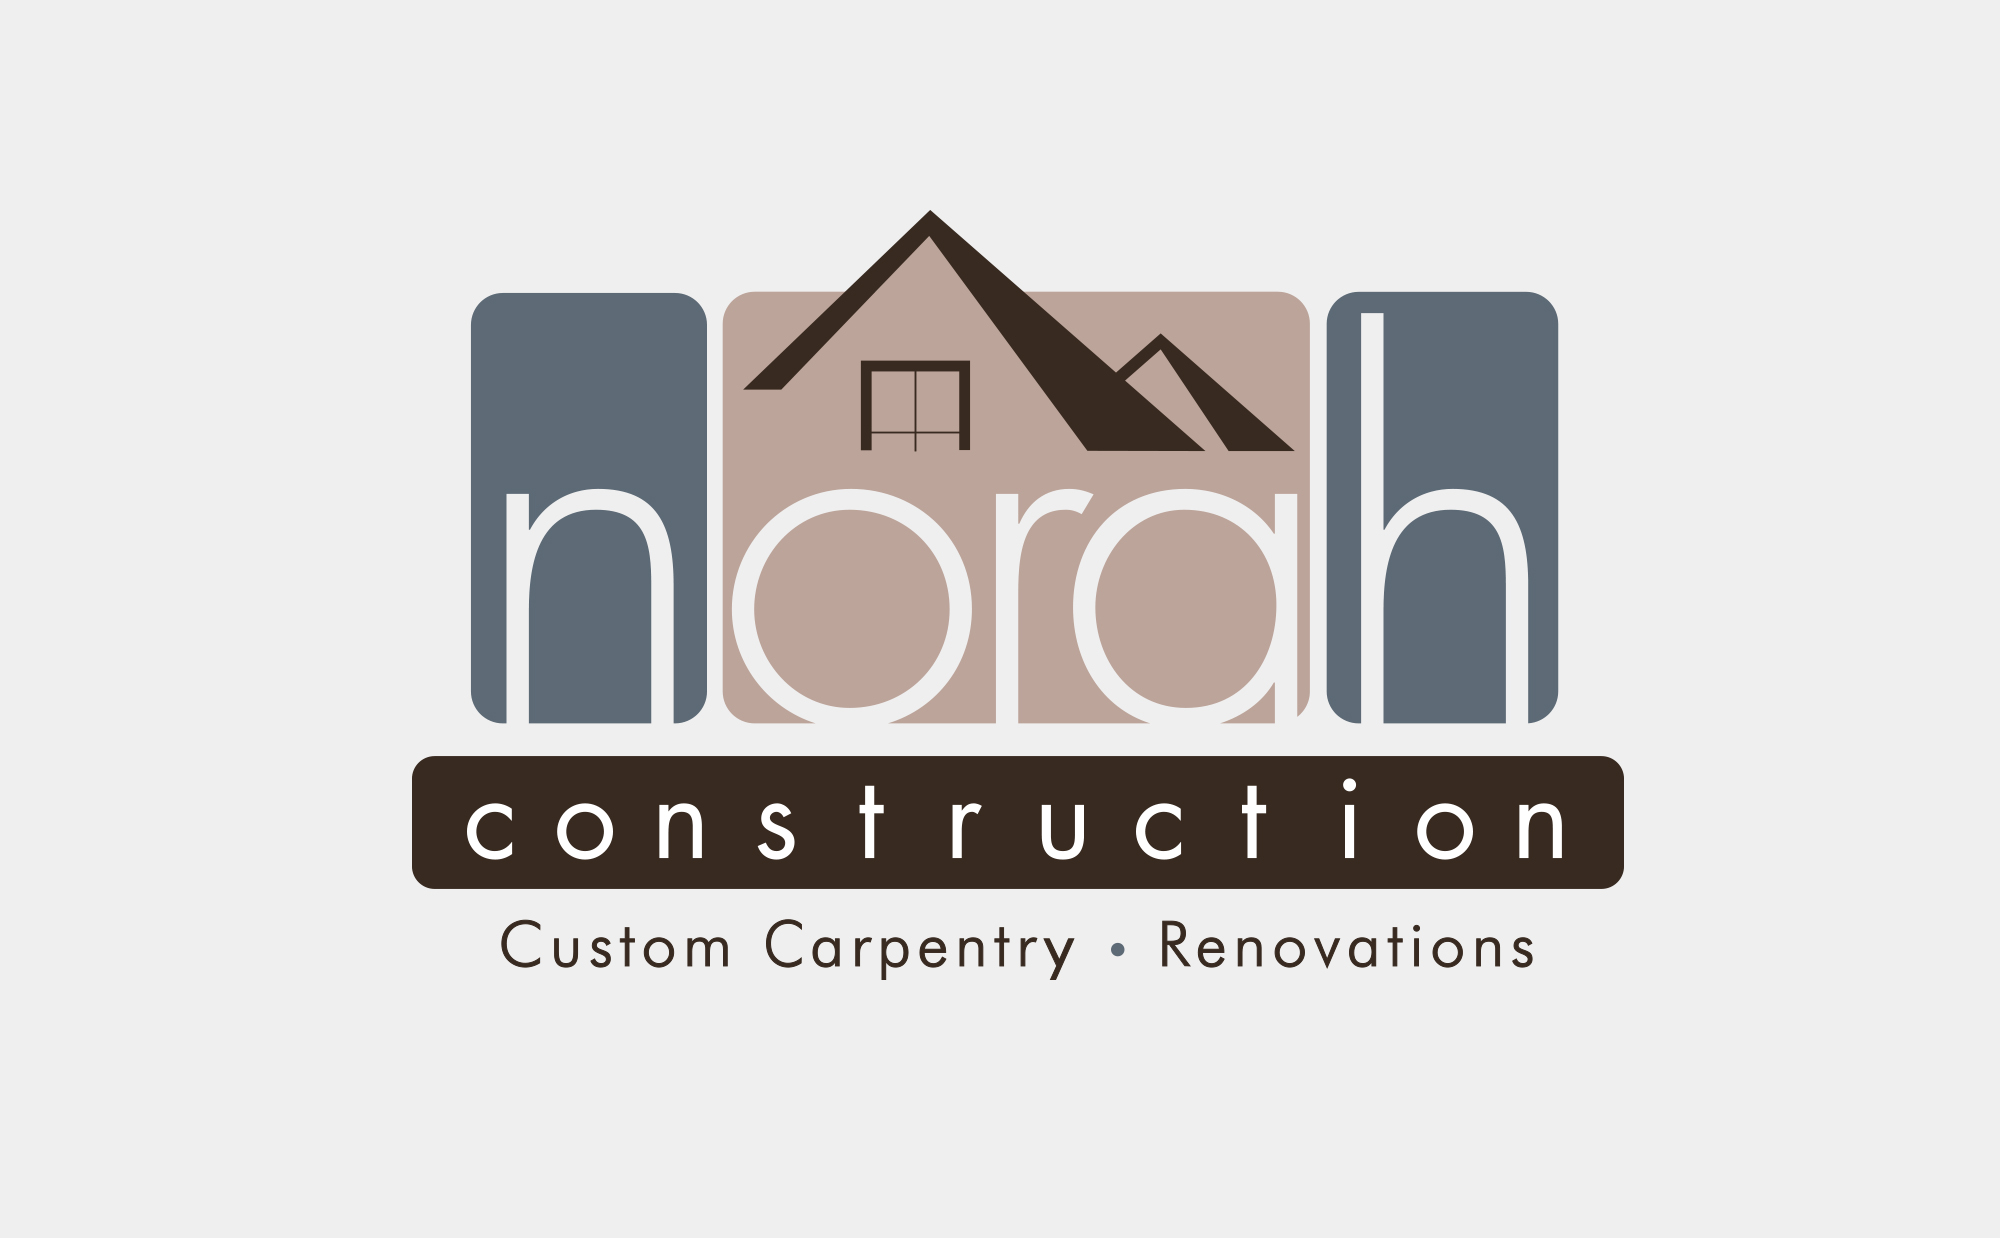 Norah Construction — STOMP DESIGNS